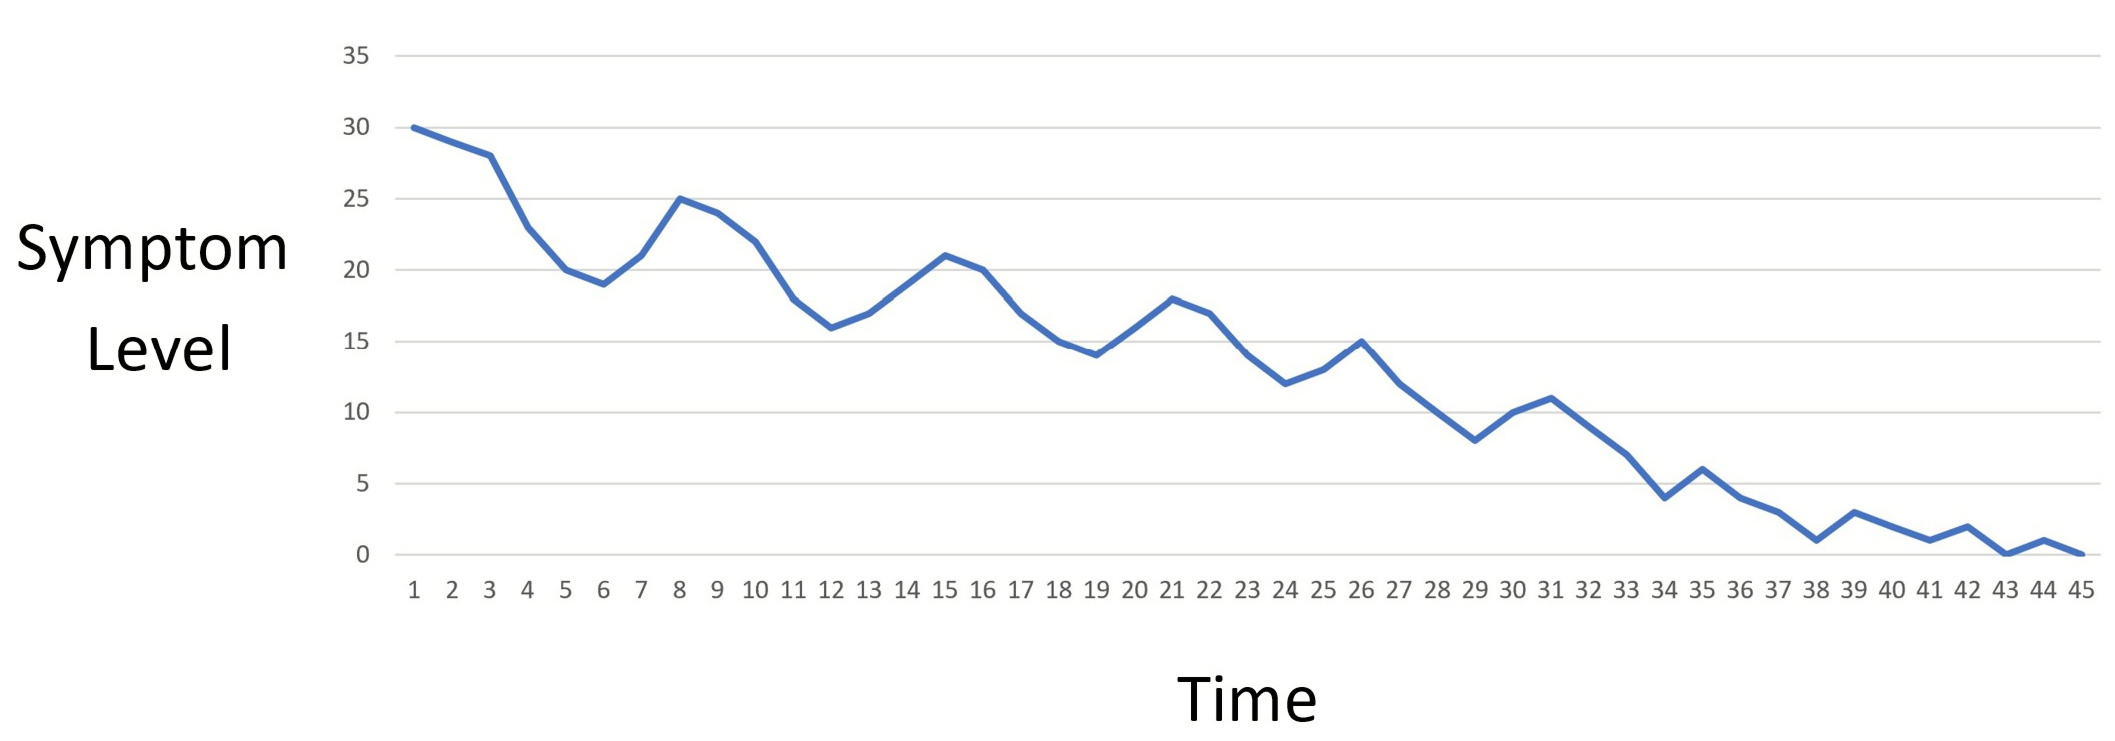 concussion recovery curve of symptom fluctuation over time